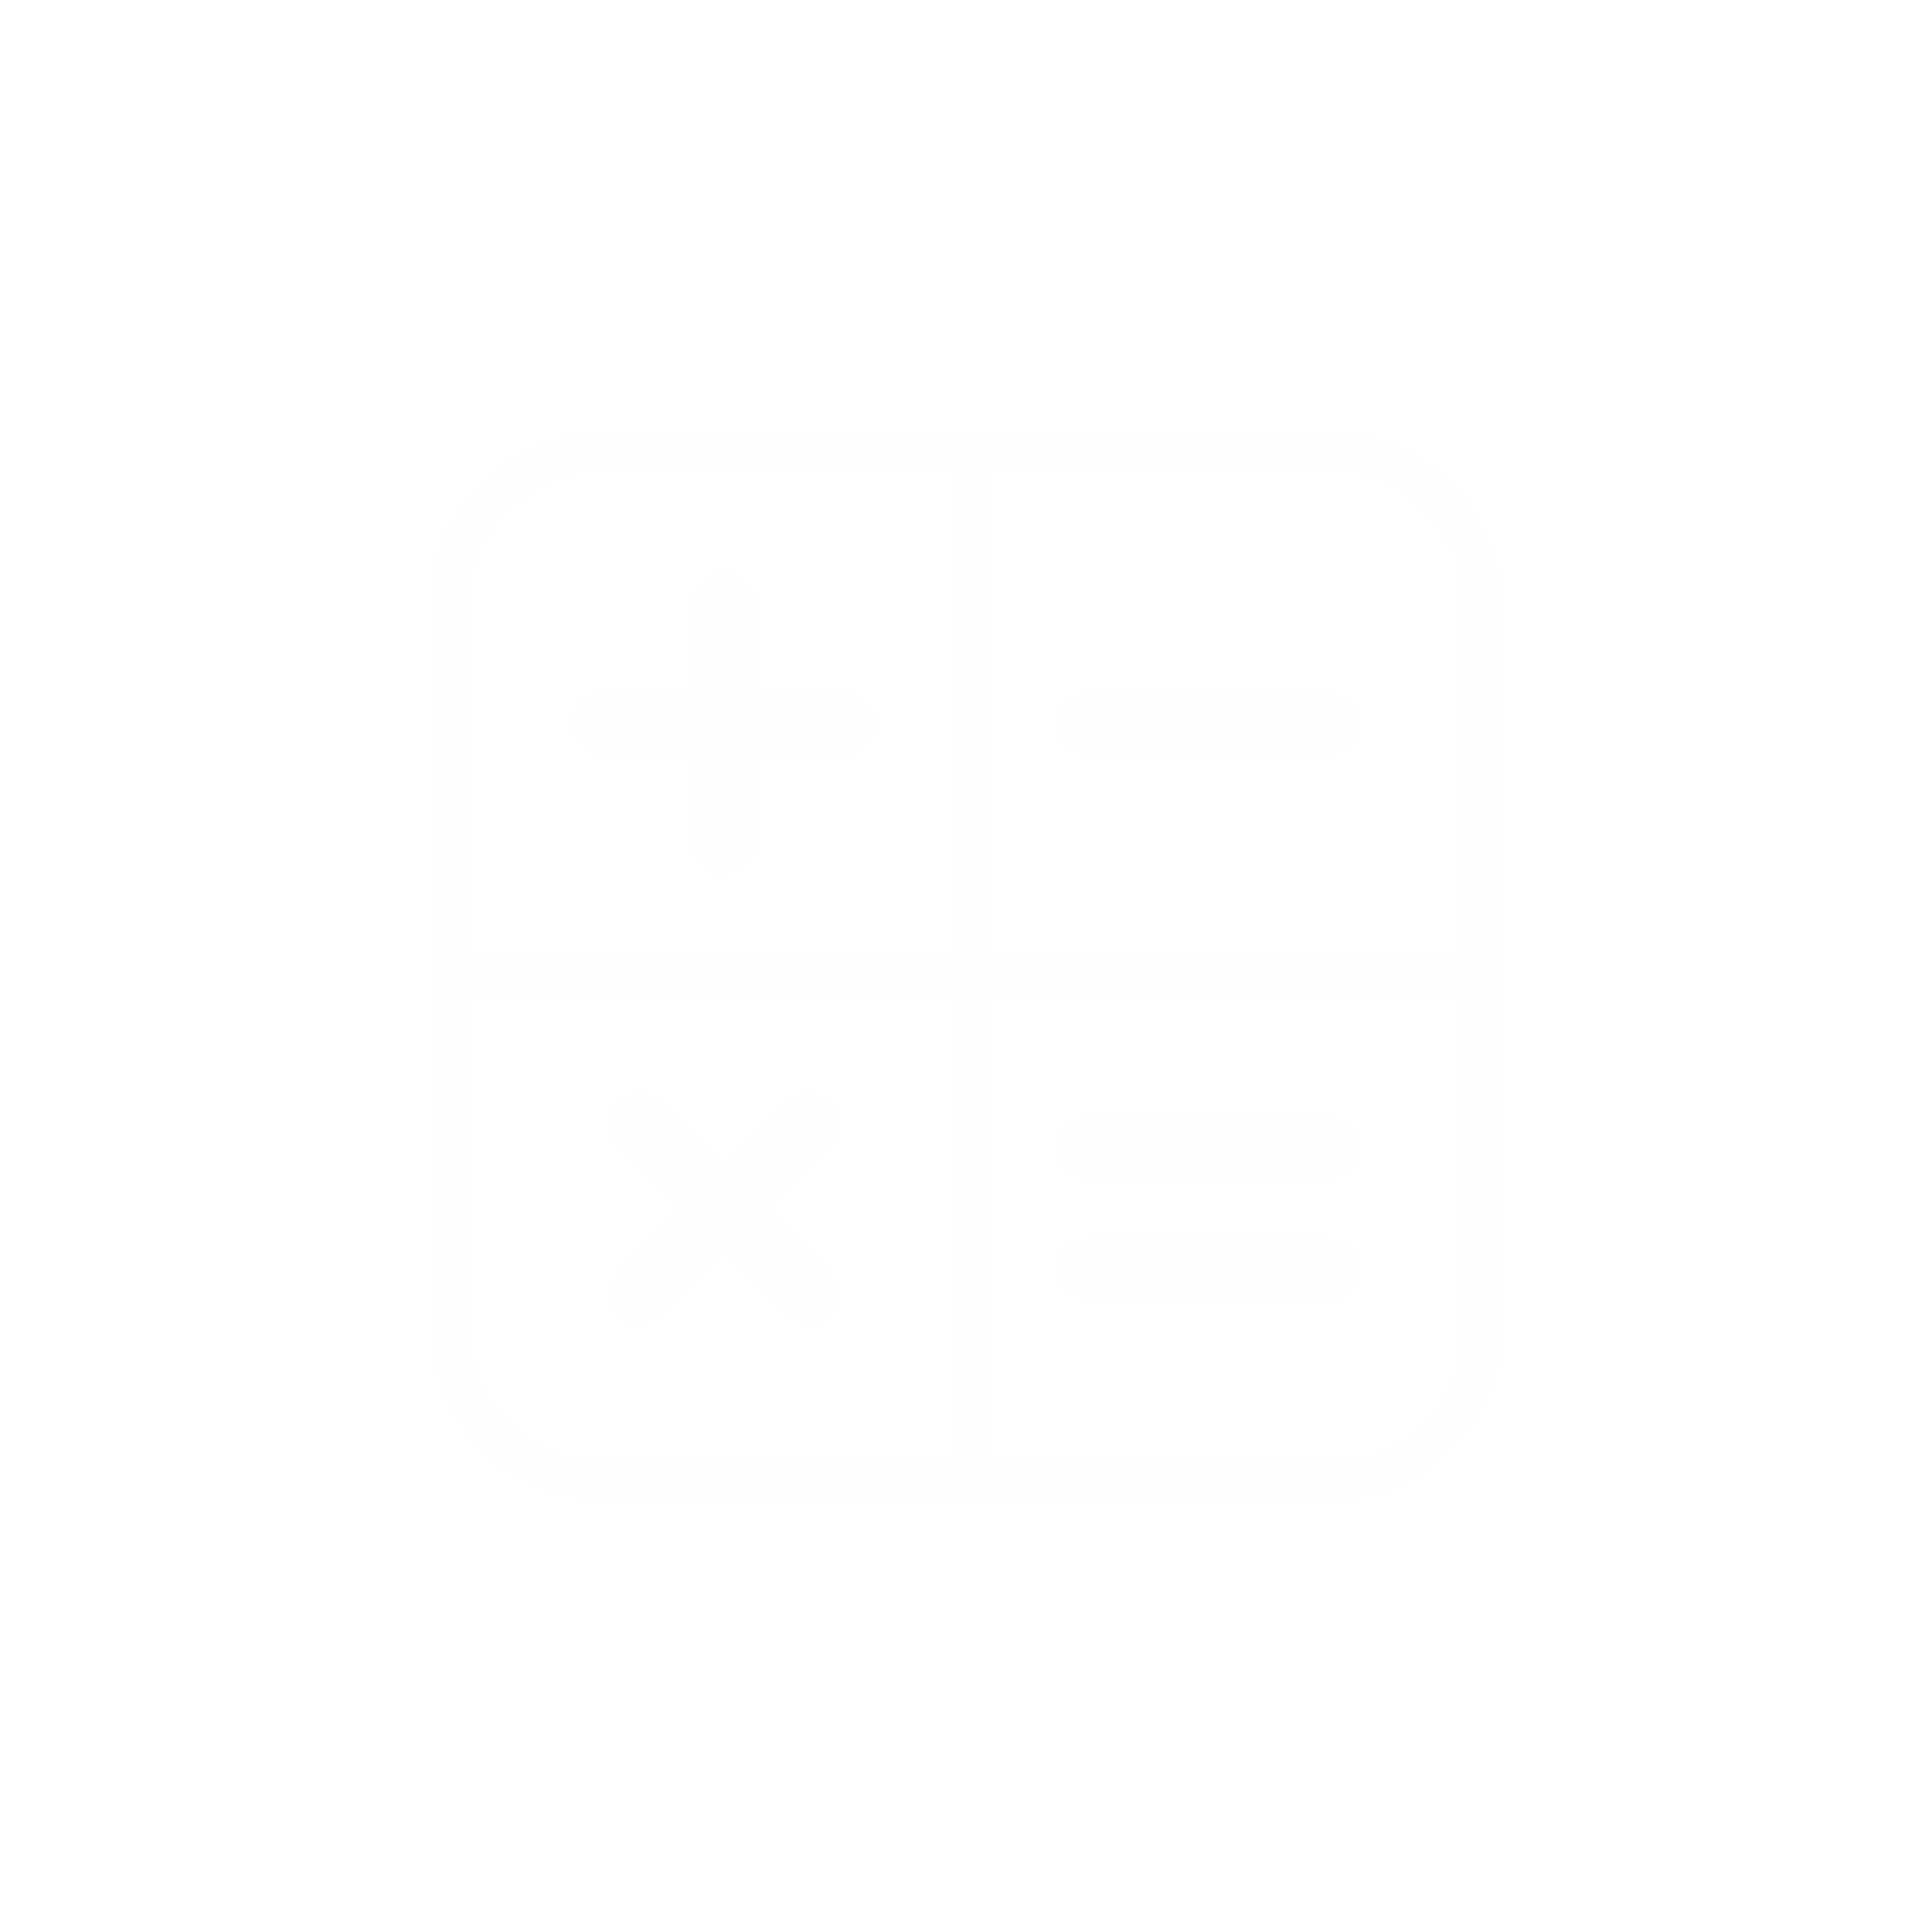 Mathematical Operators icon